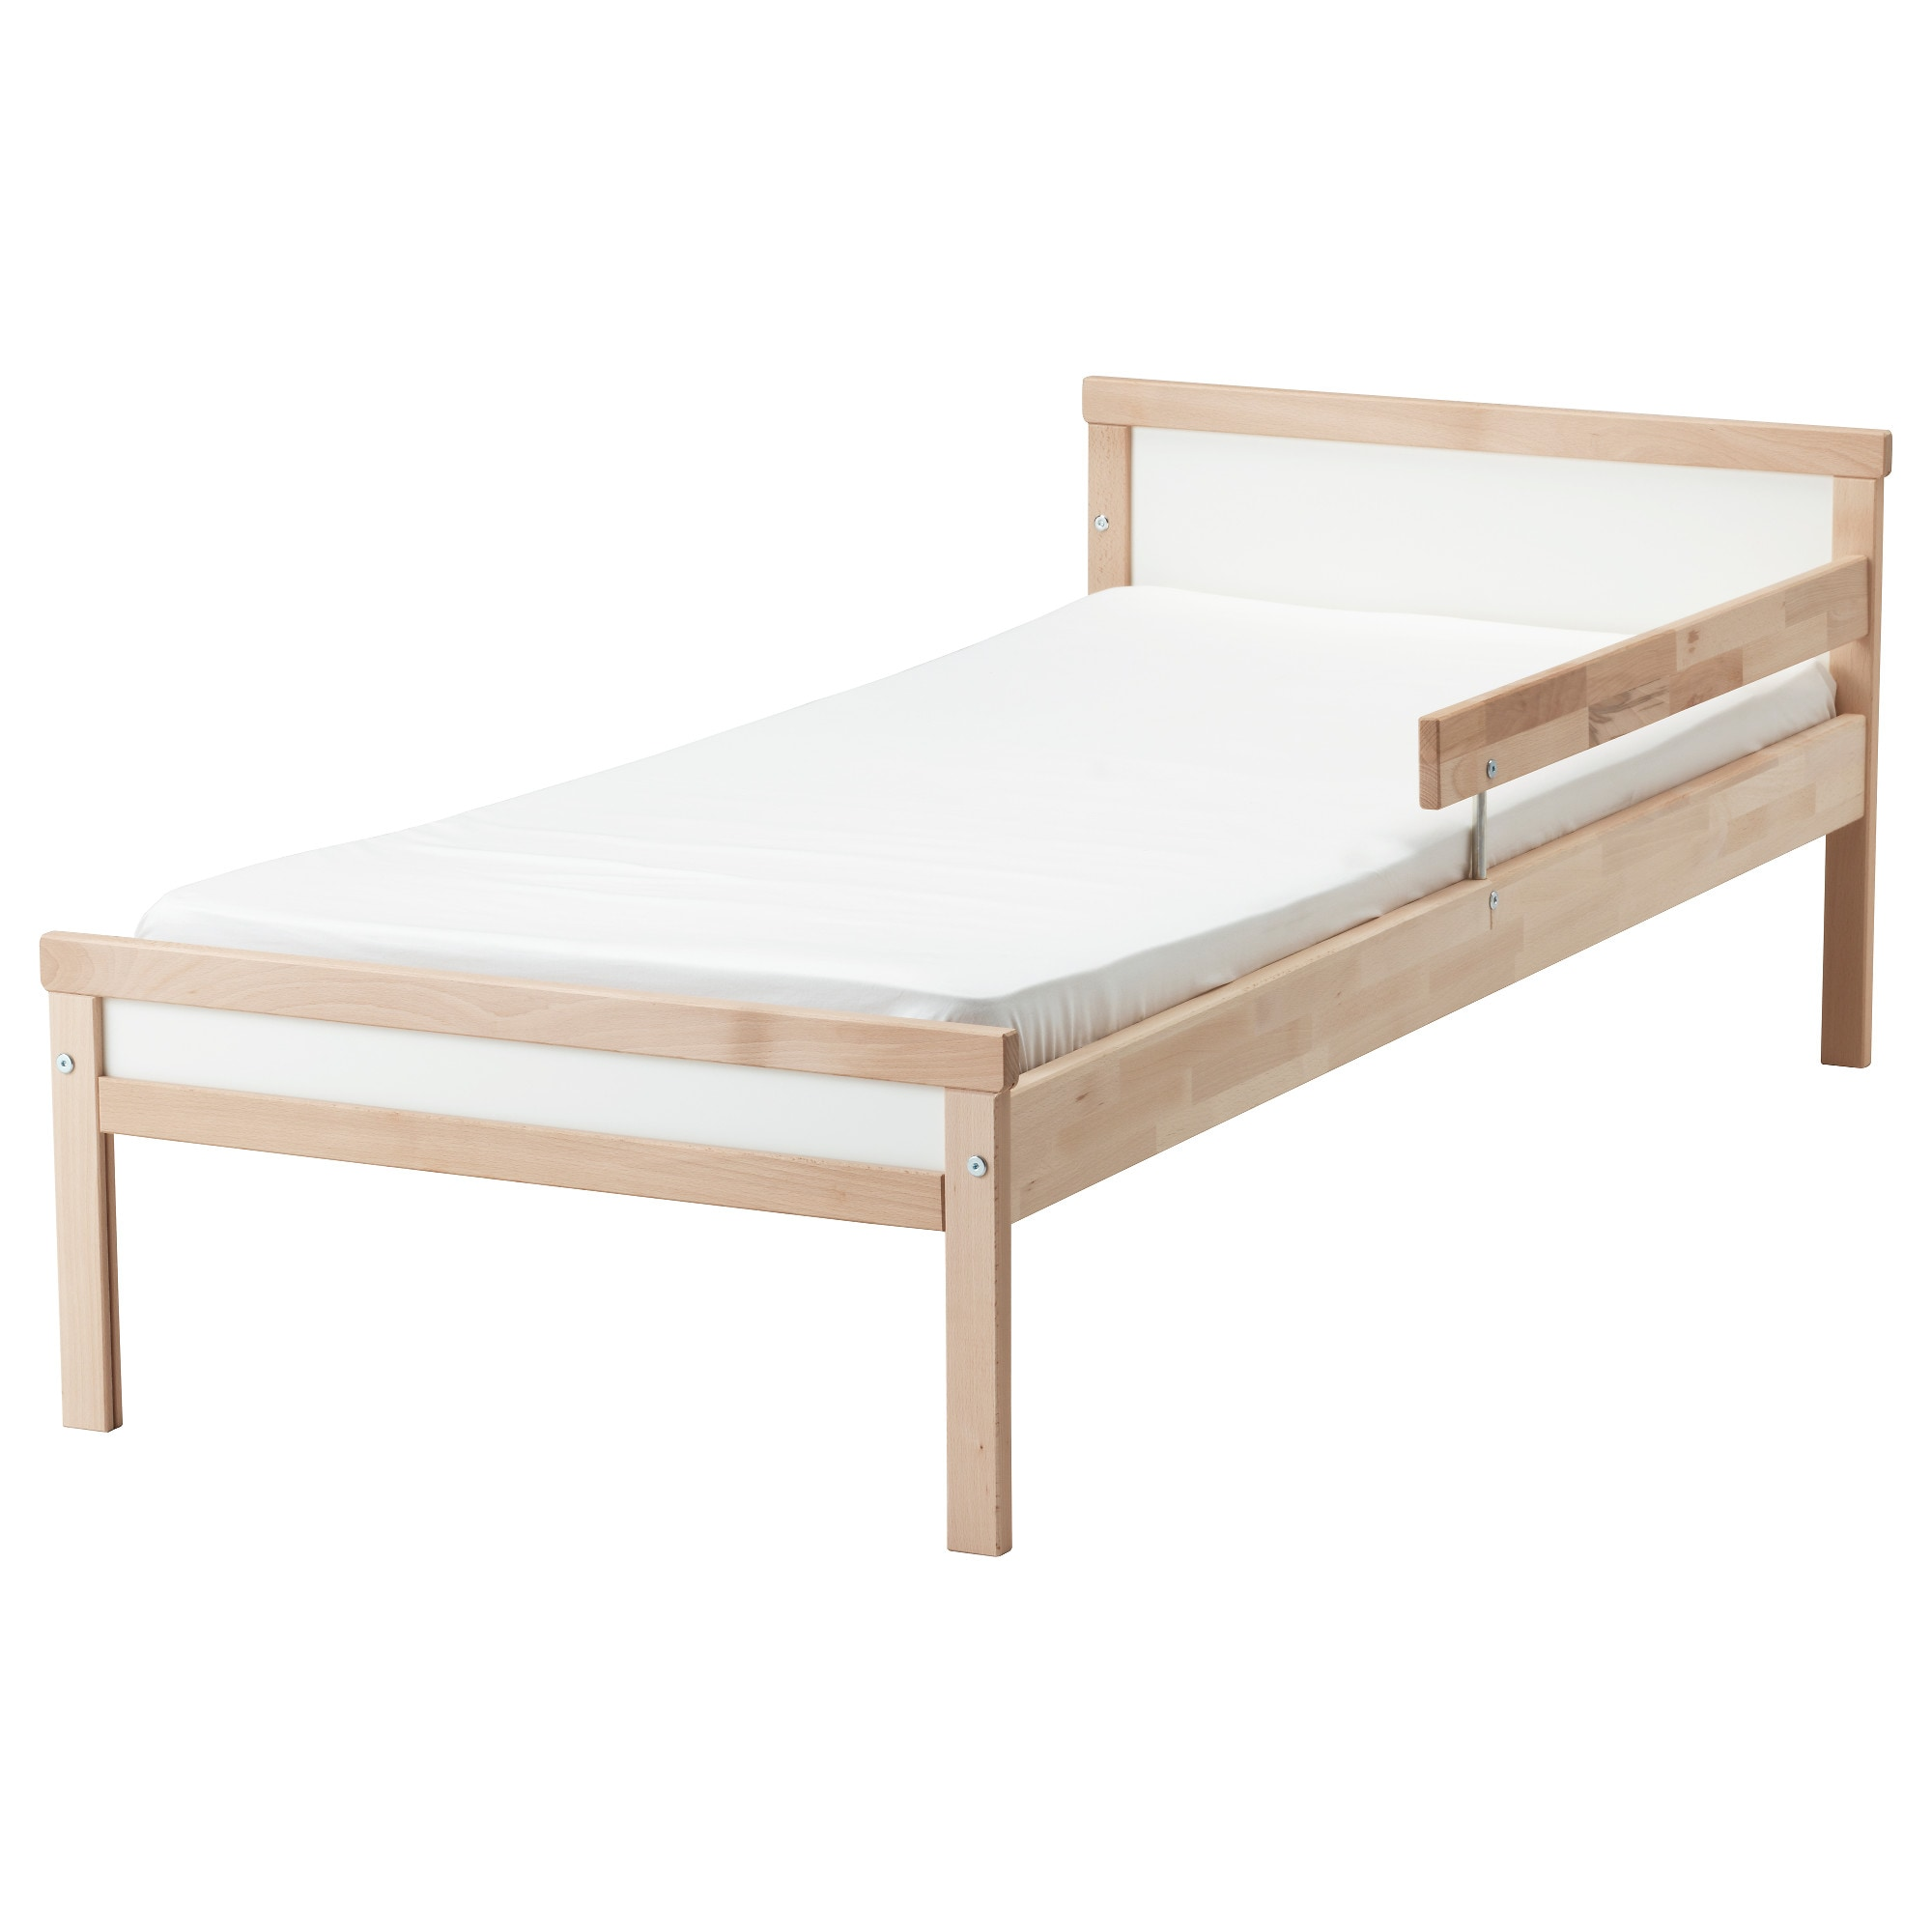 SNIGLAR bed frame with slatted bed base, beech Length: 65